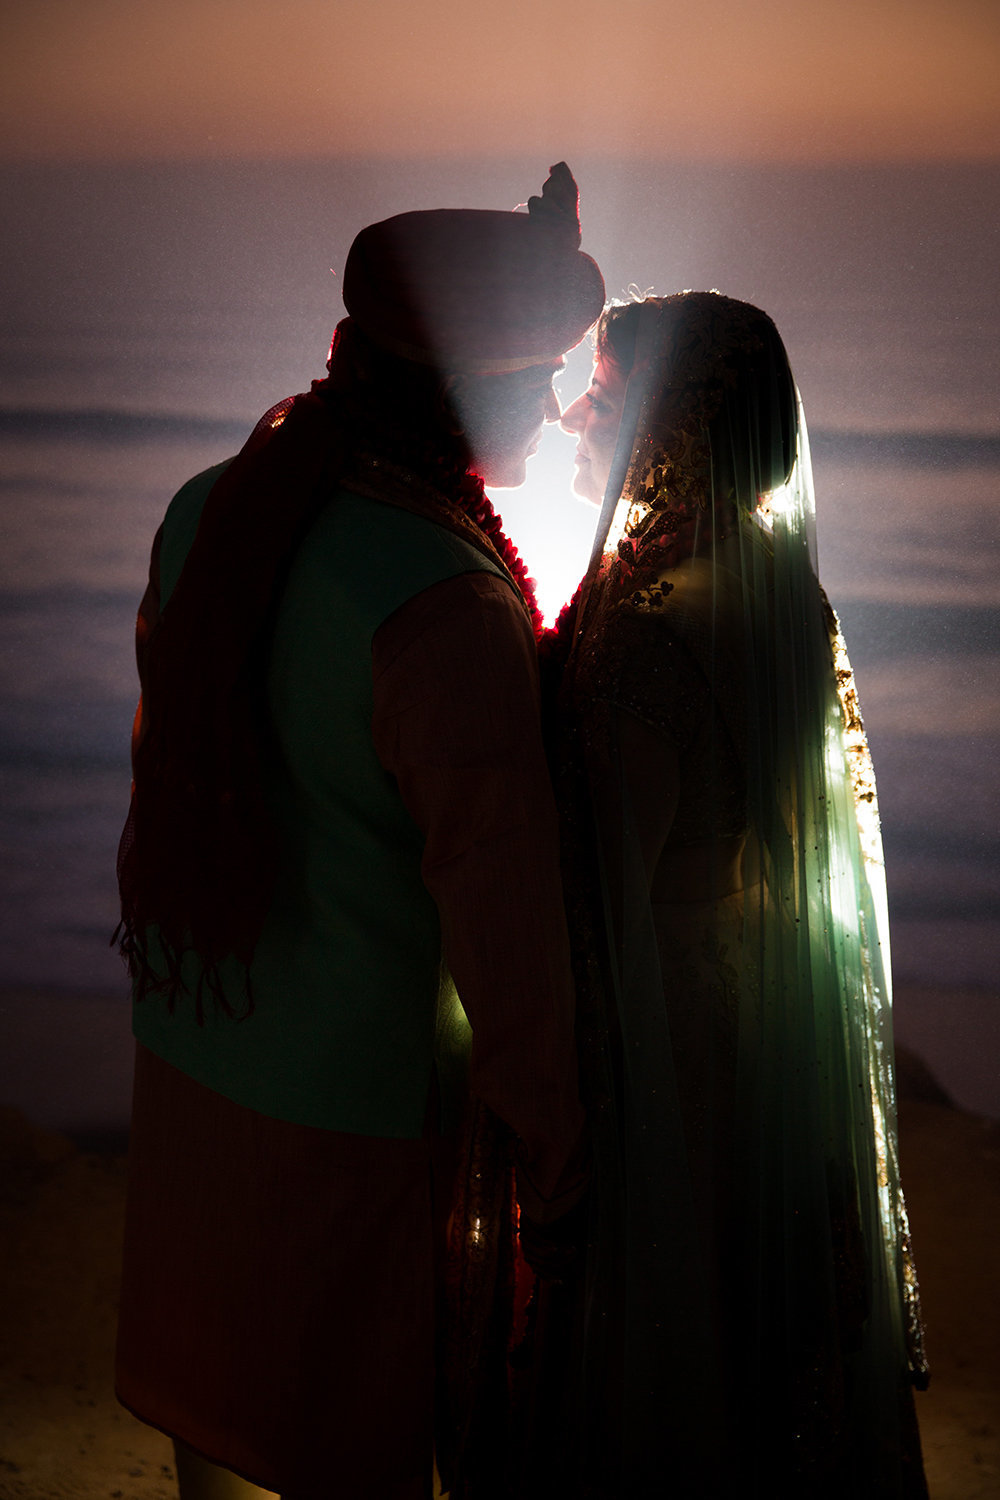 Dramatic Indian Hindu Wedding Portrait on Cliffs Overlooking Ocean in San Diego